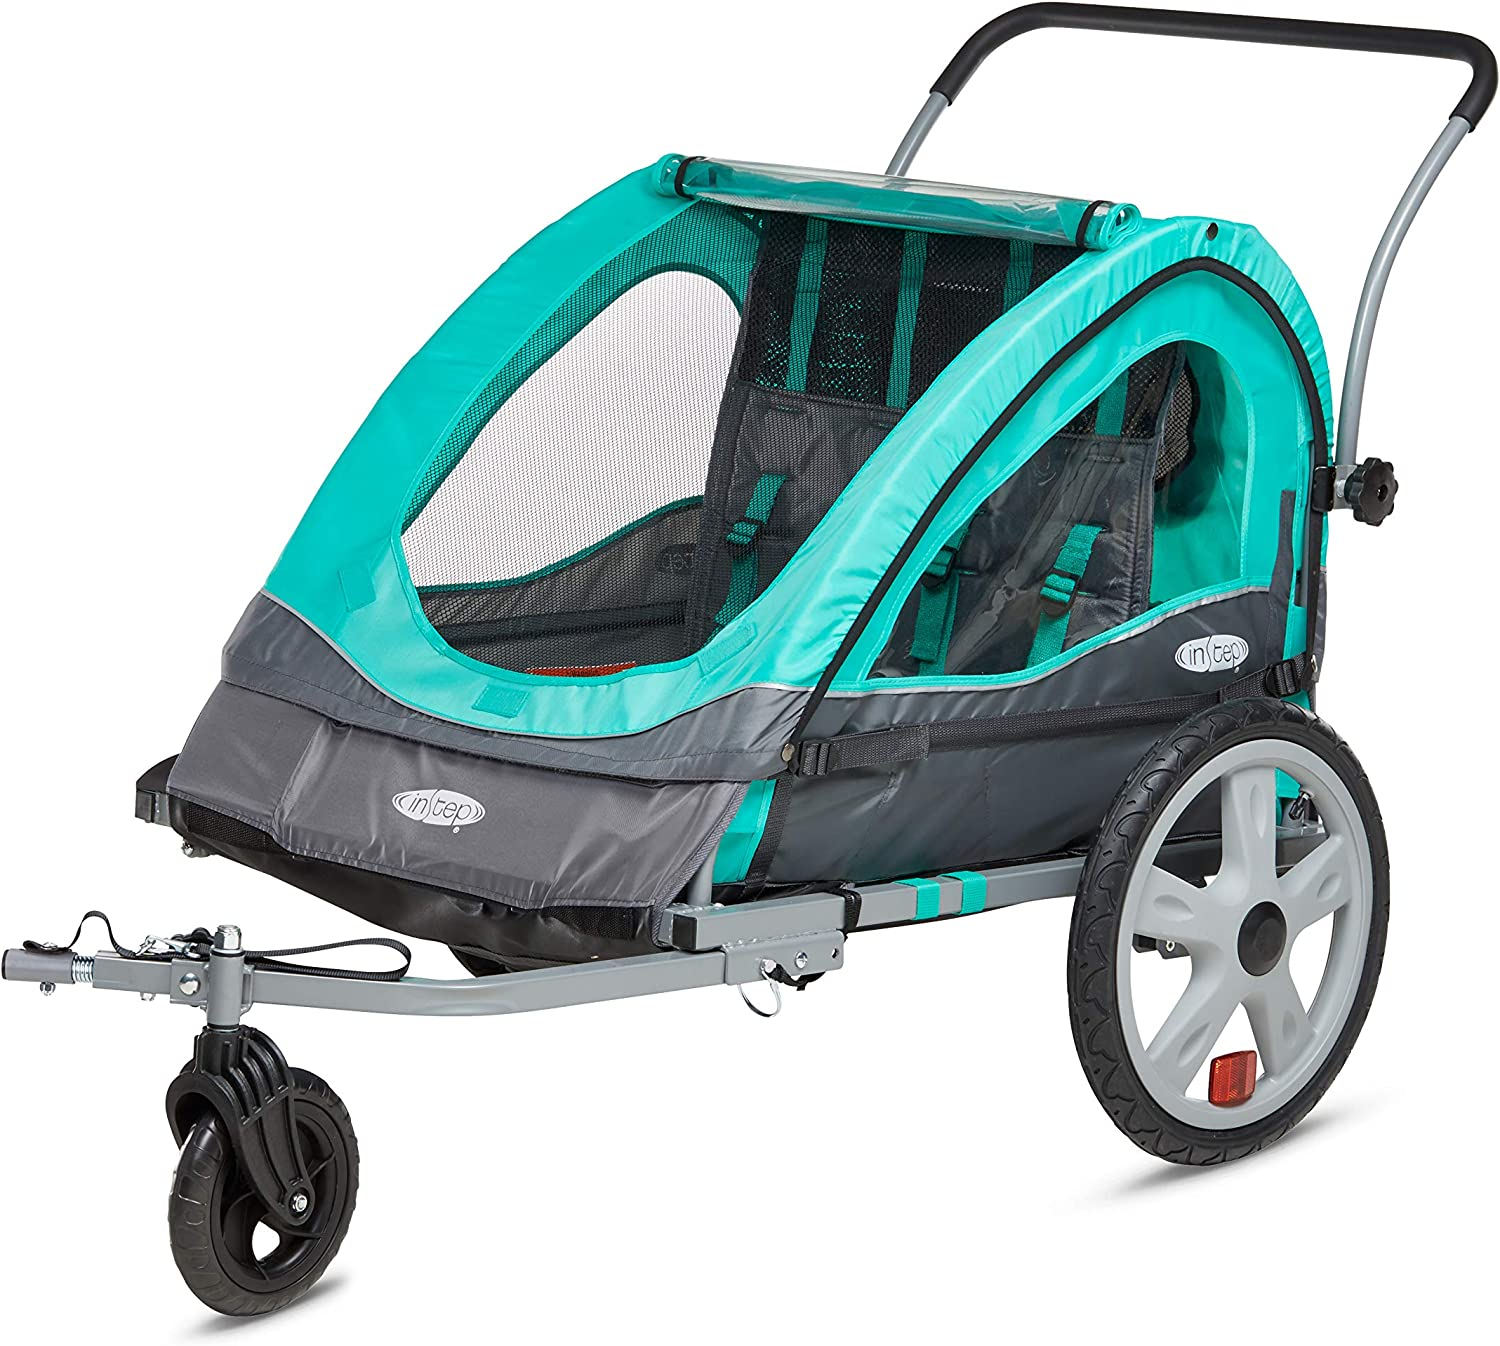 Detroit Mall Instep Quick-N-EZ Double Ranking TOP13 Tow Behind Trailer K Bike for Toddlers